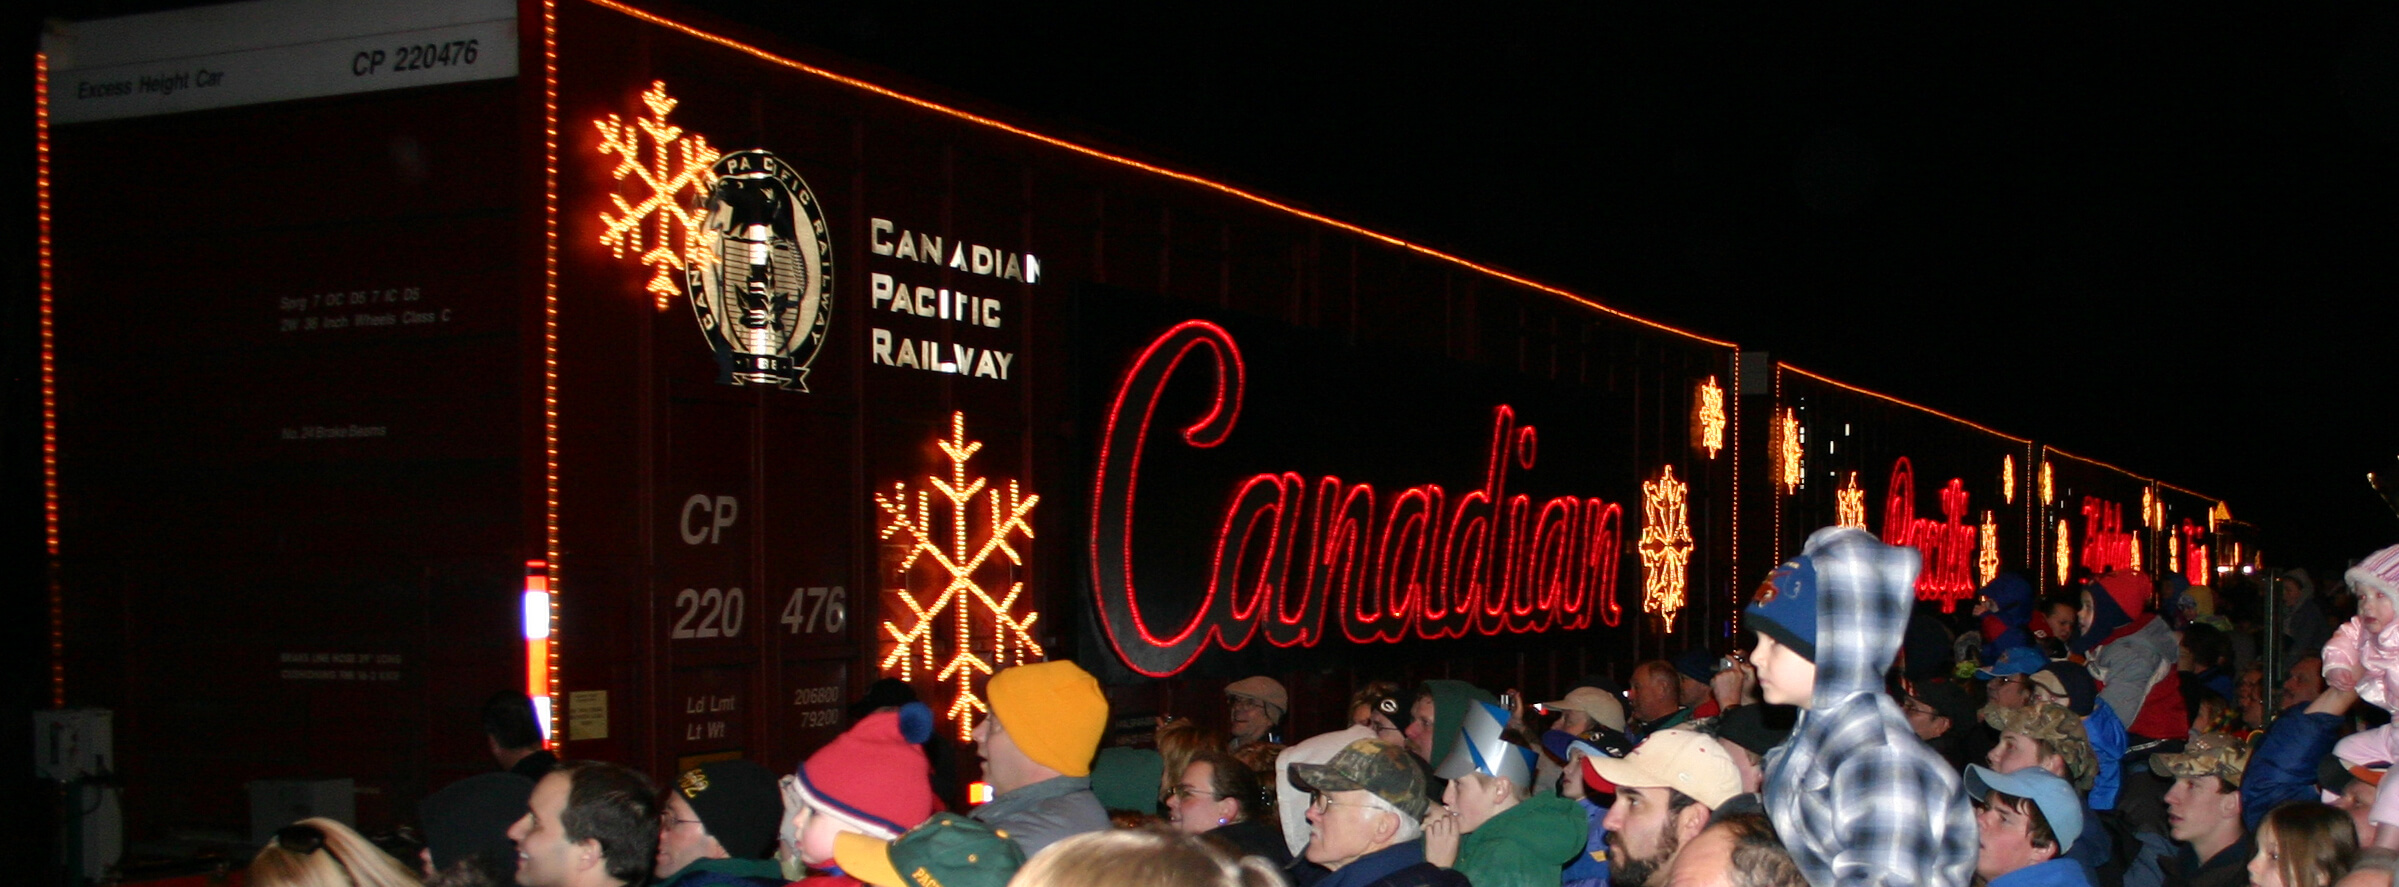 Canadian Pacific Railway S Holiday Train Wisconsin Dells